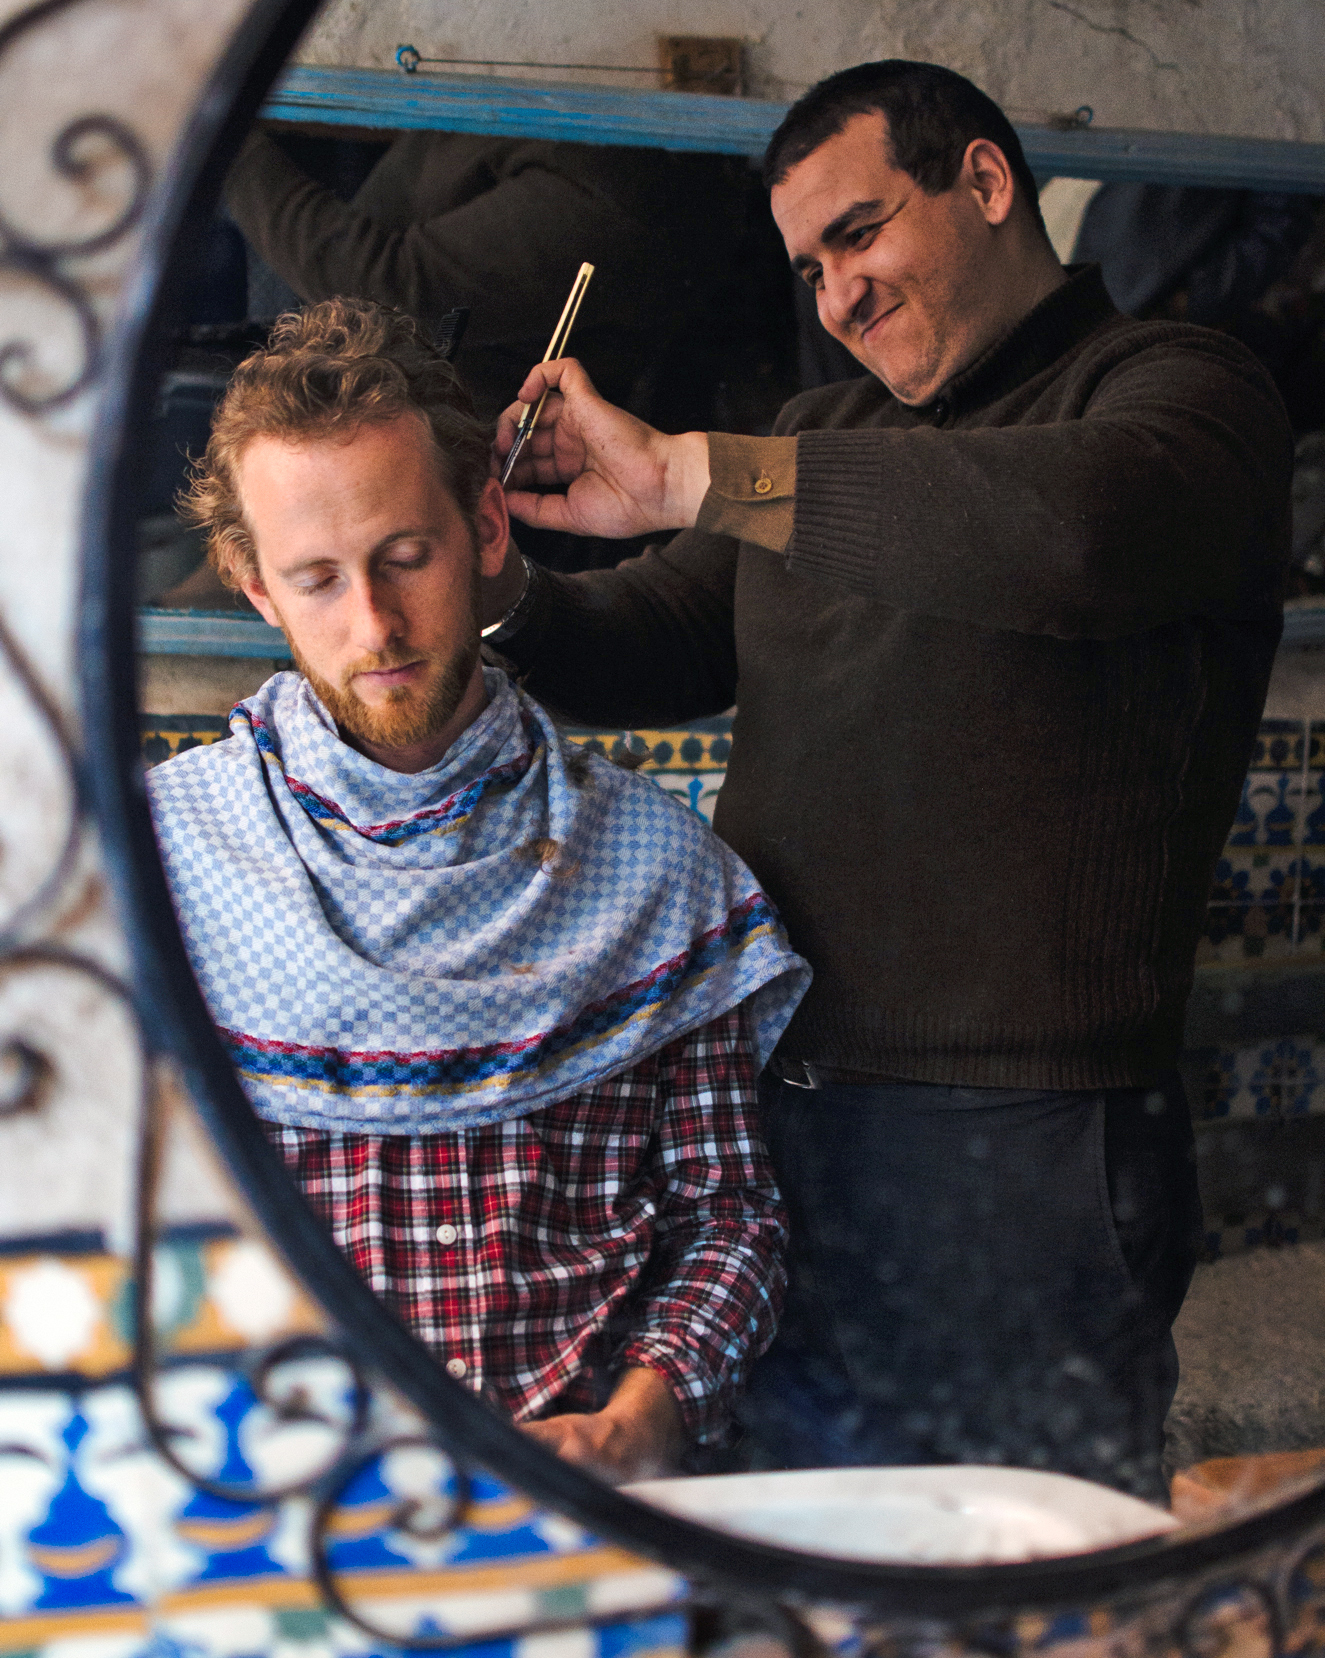 morocco-honeymoon-haircut-marrakech-dsc0989-0914.jpg